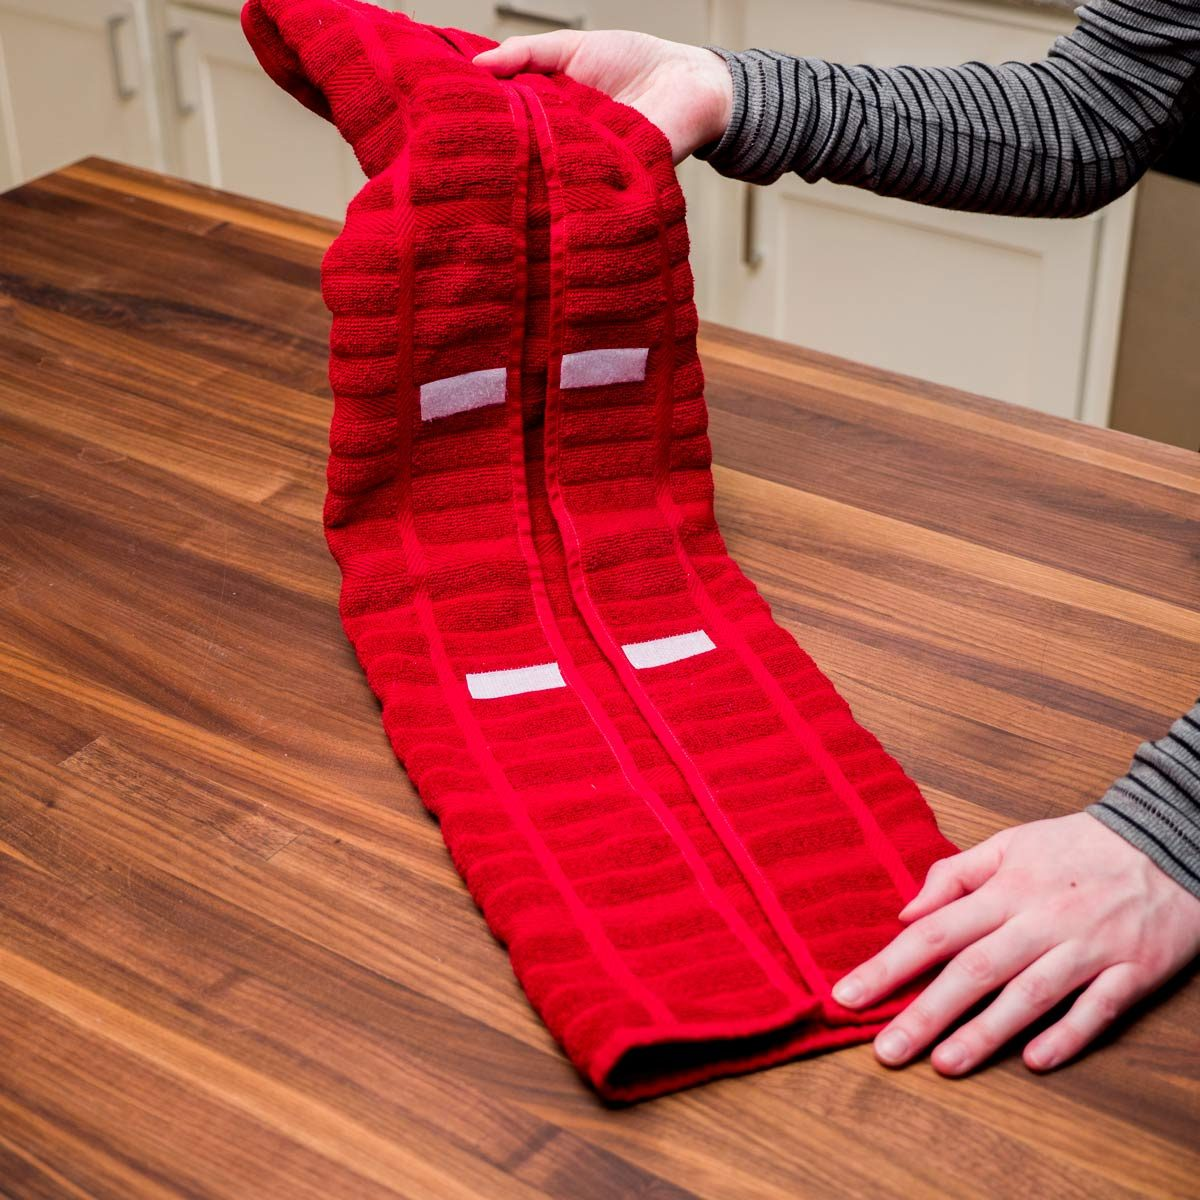 HH Velcro Secure kitchen towels